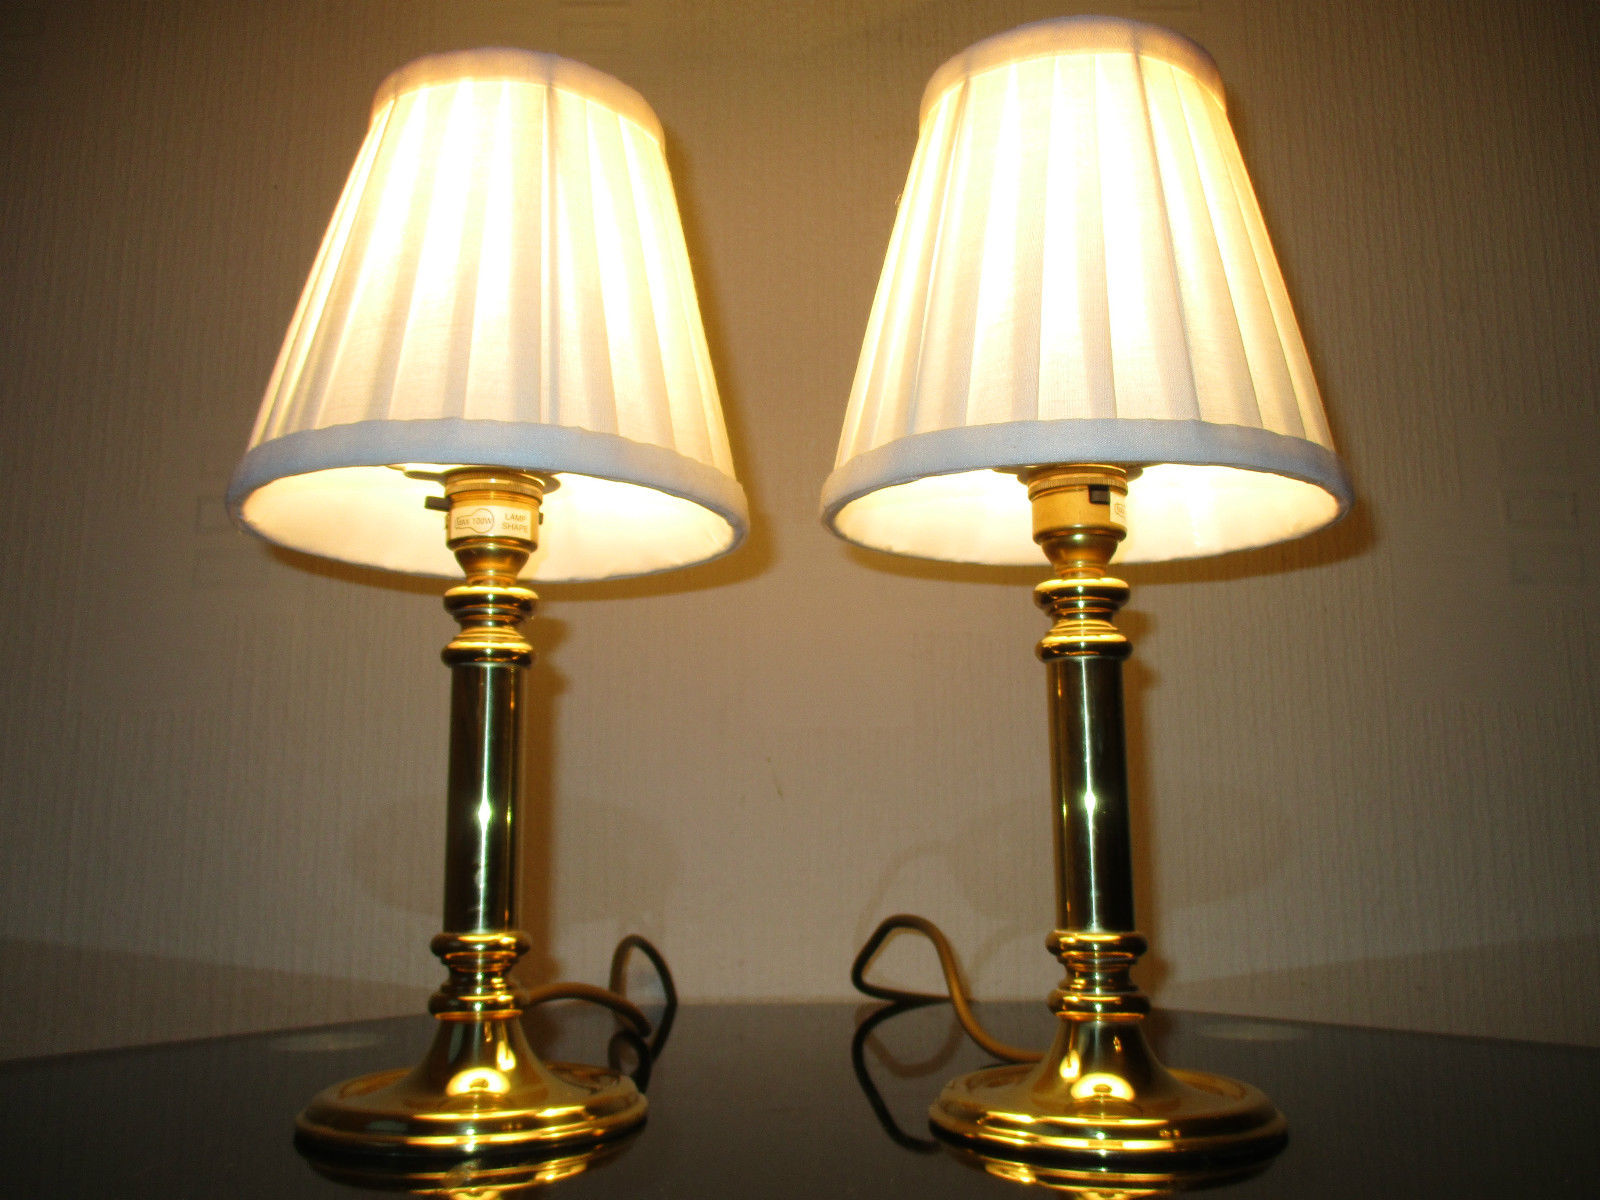 solid-brass-lamps-photo-16